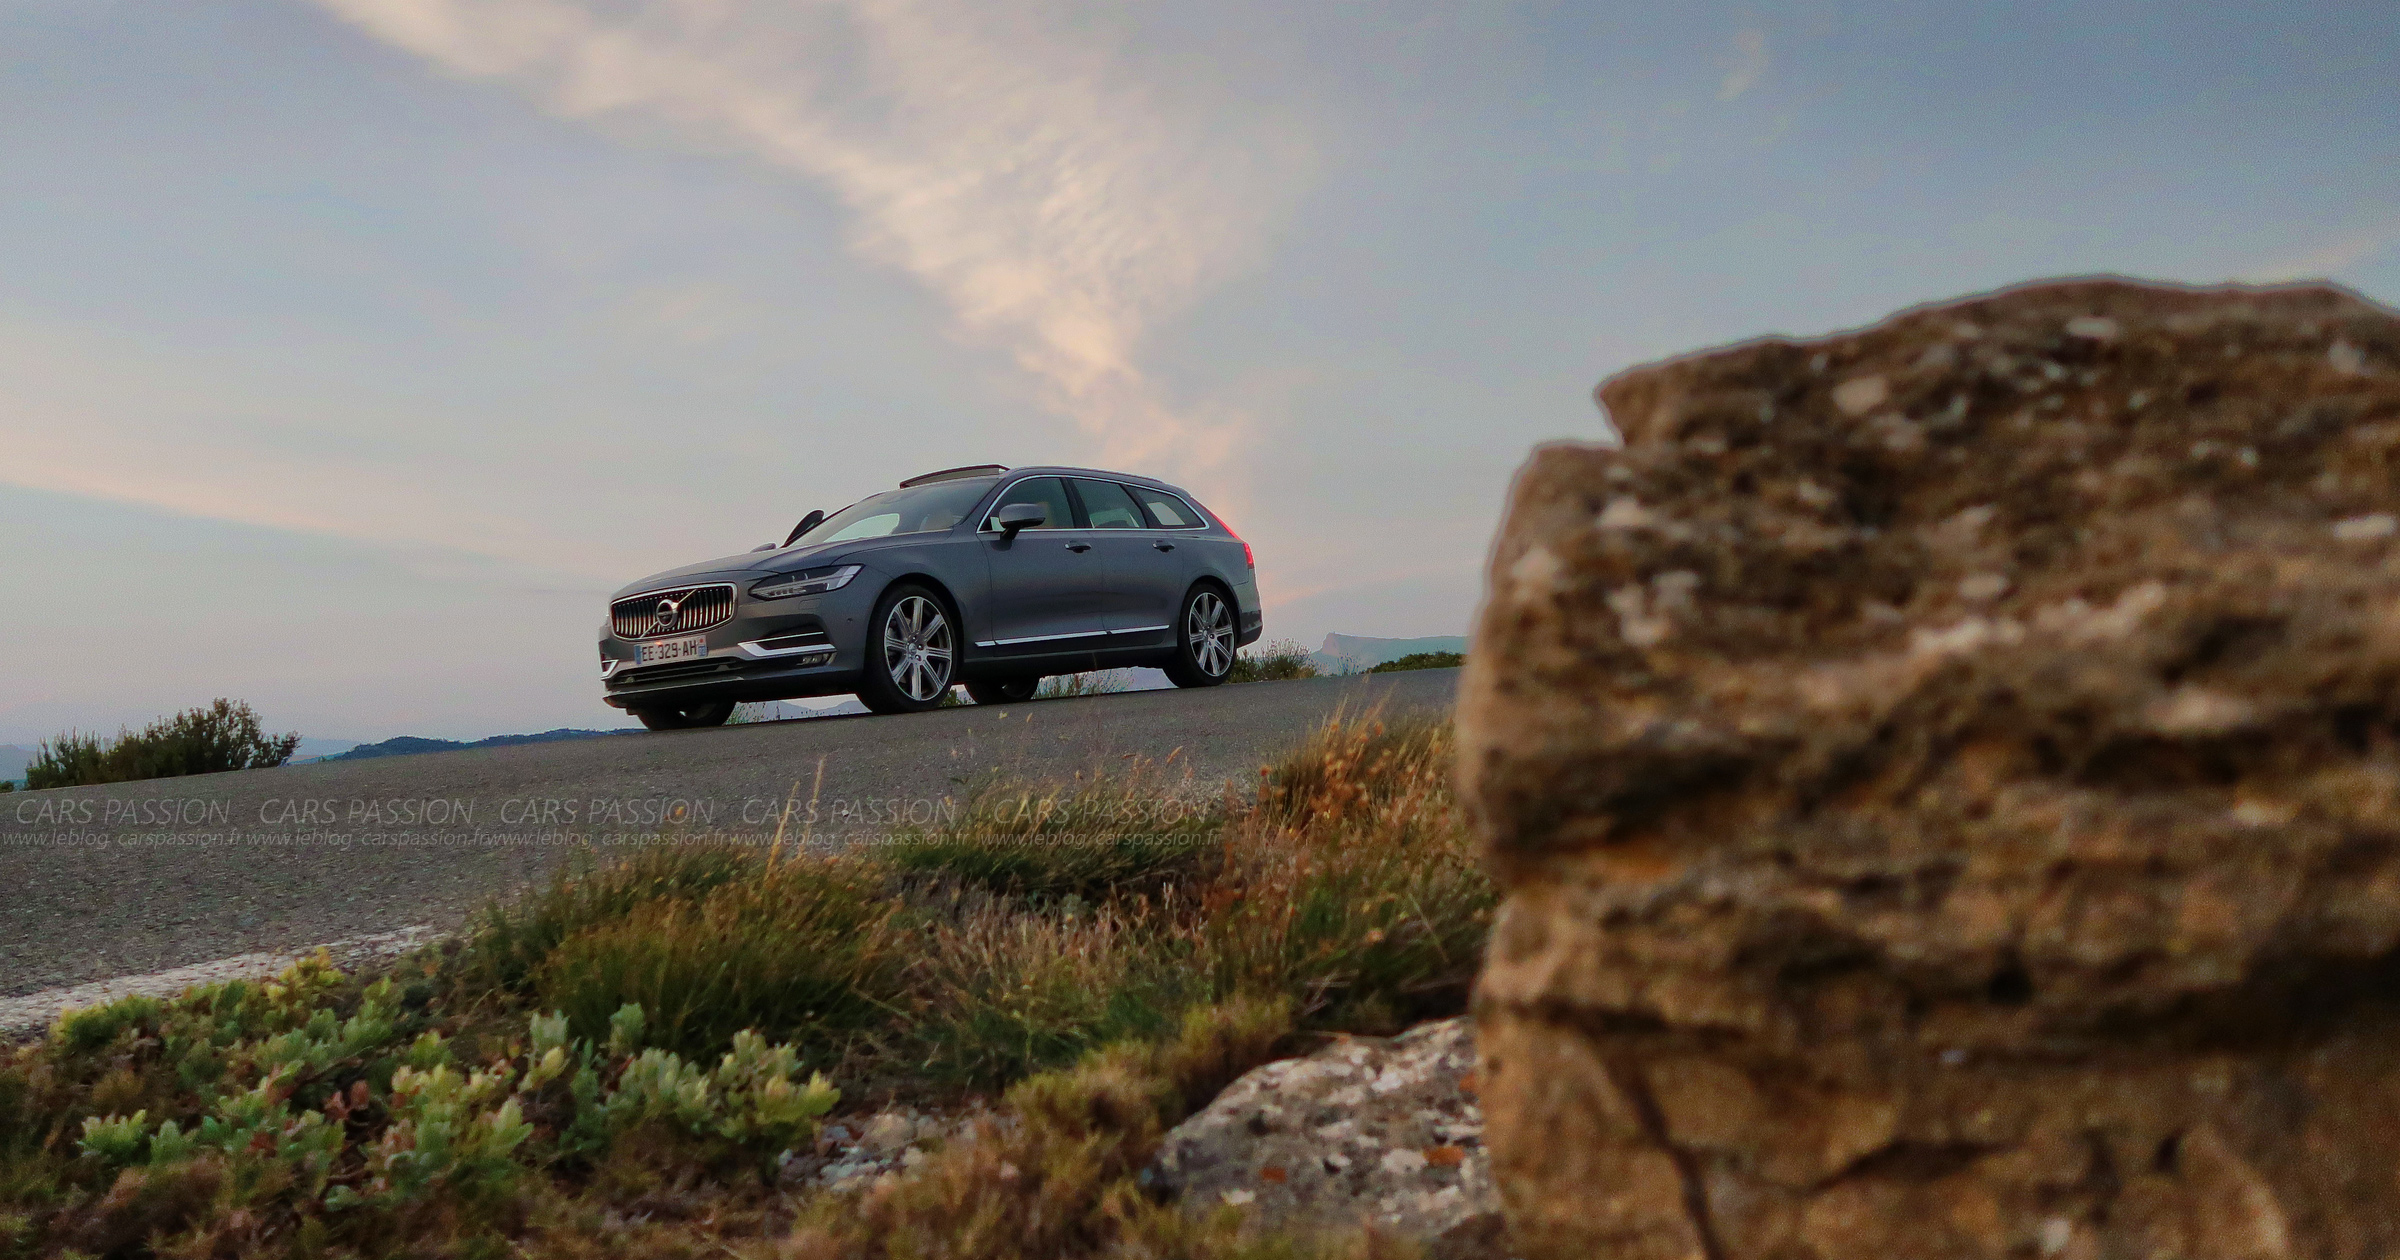 Essai Road Trip Volvo V90 D5 Inscription sur http://www.leblog-carspassion.fr/